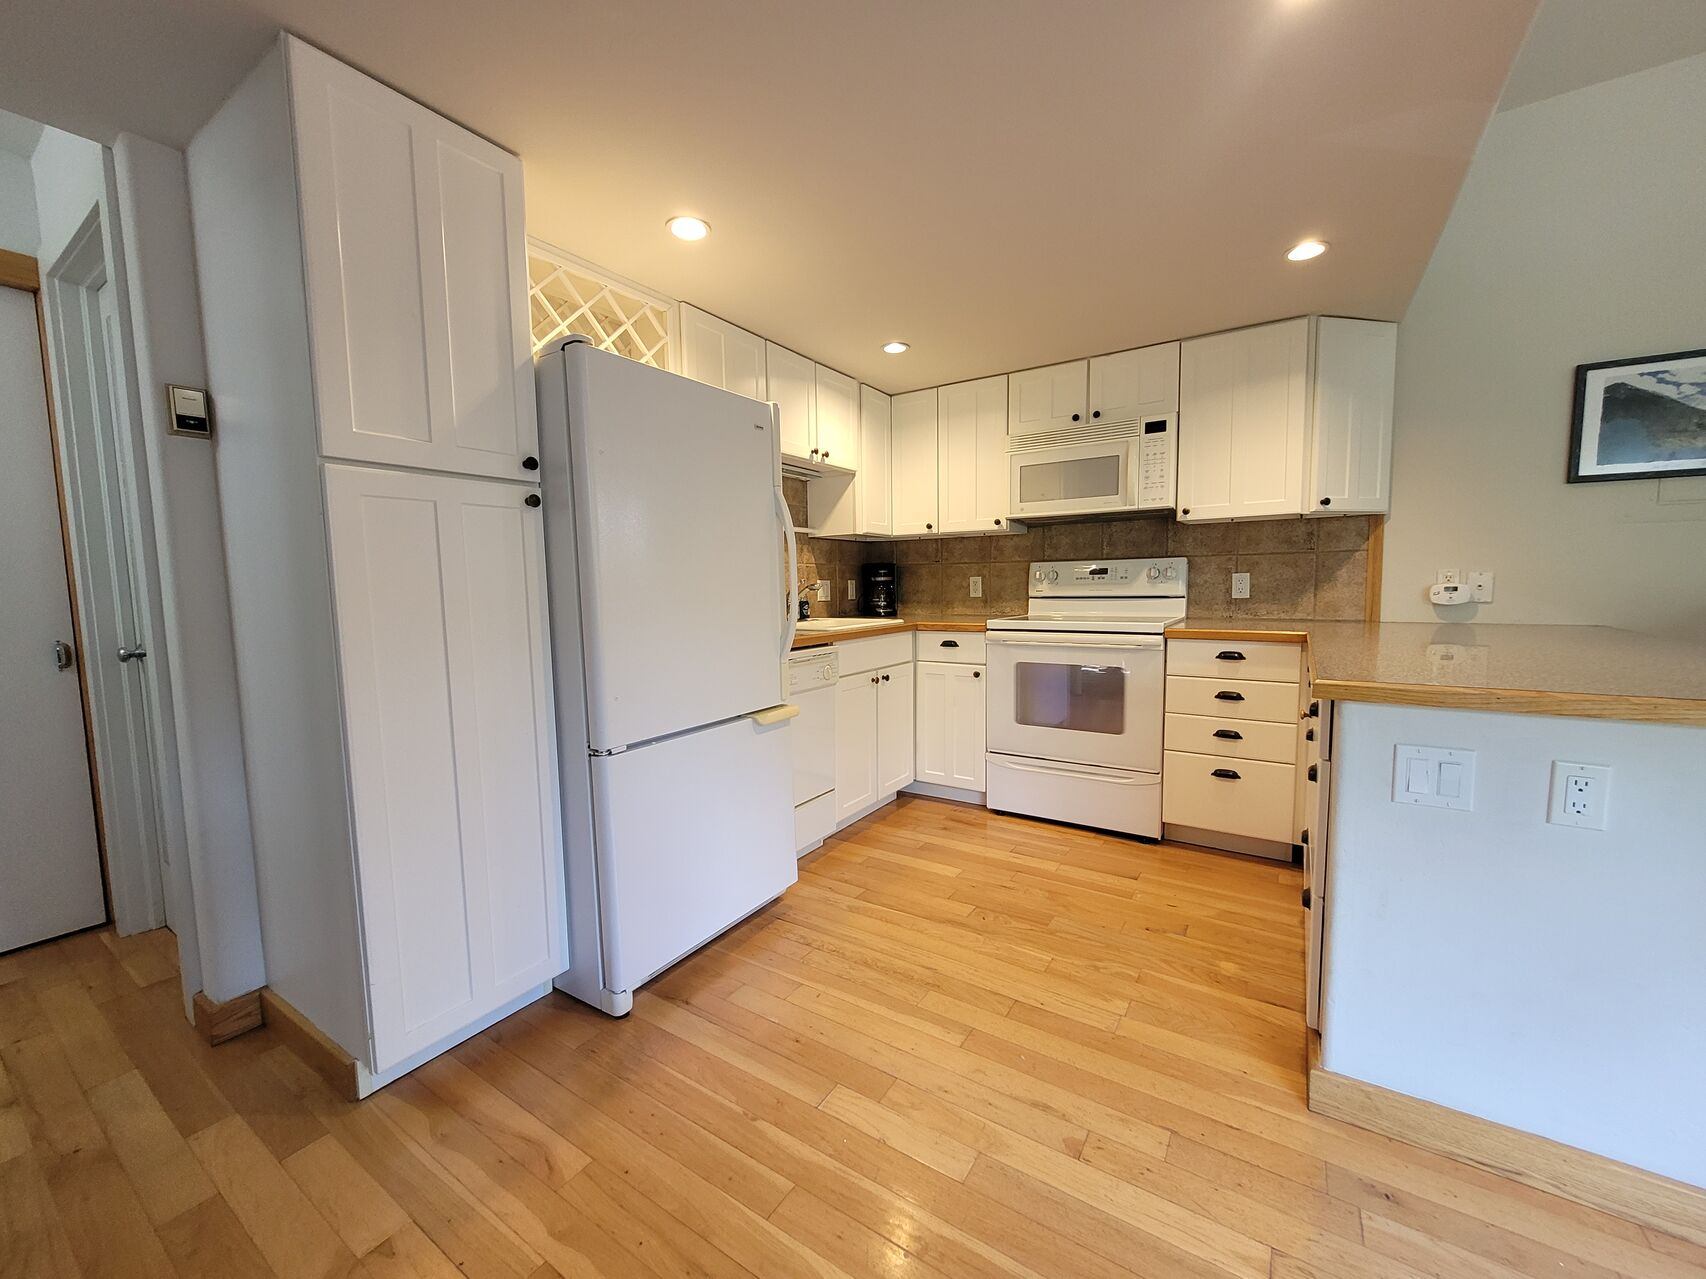 Kitchen with white appliances and wood floors